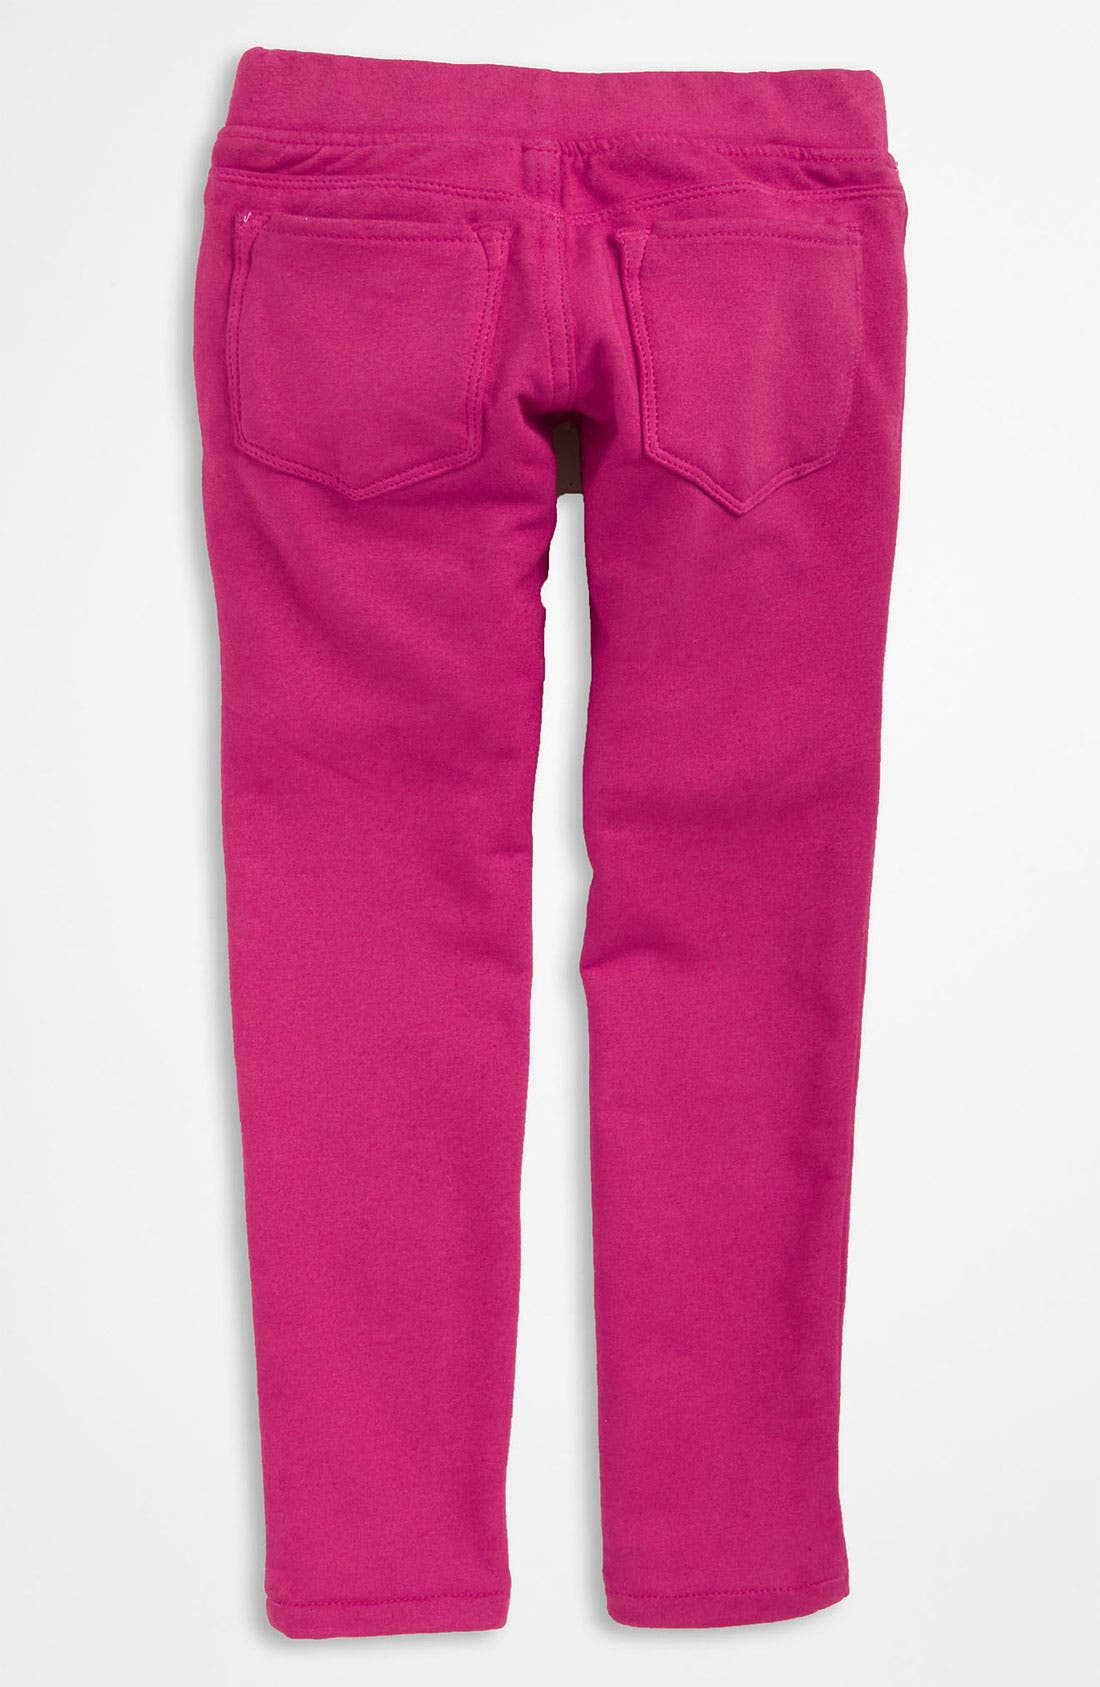 Alternate Image 1 Selected - Tractr French Terry Leggings (Little Girls)